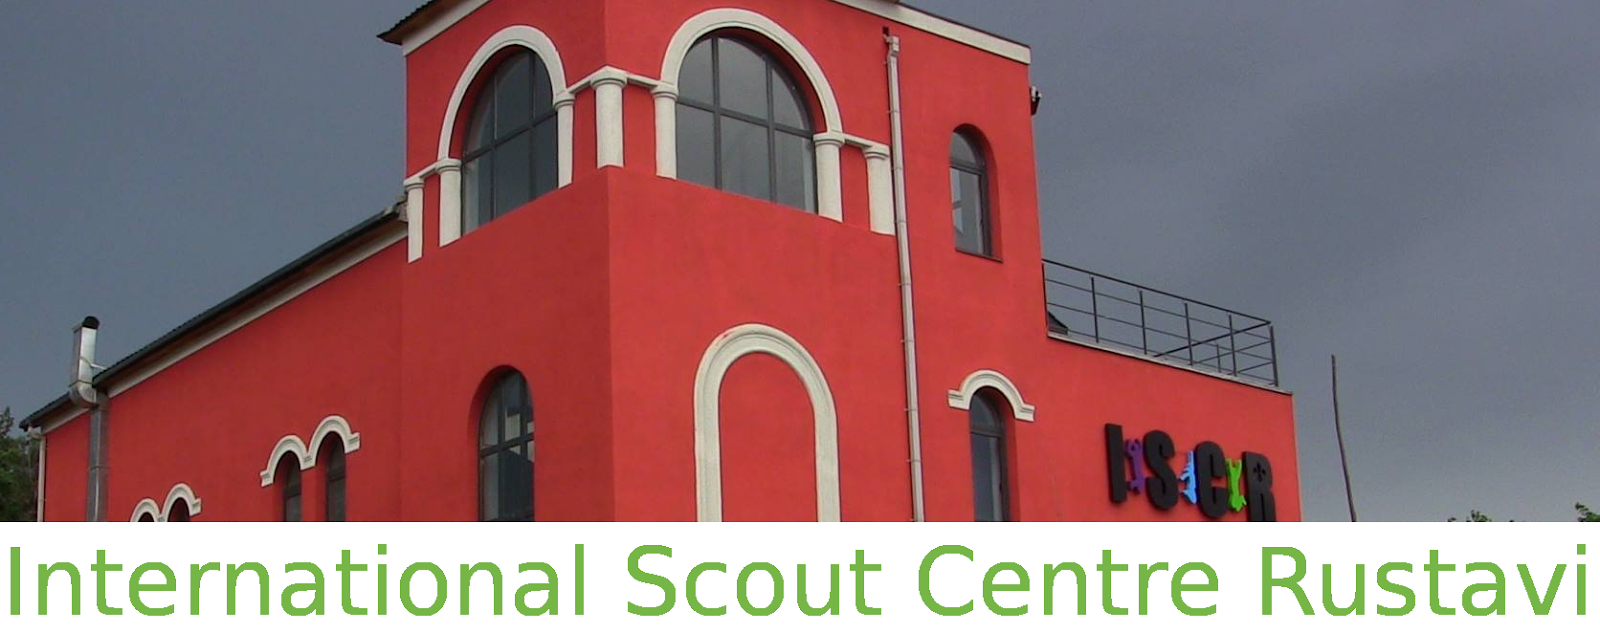 International Scout Centre Rustavi